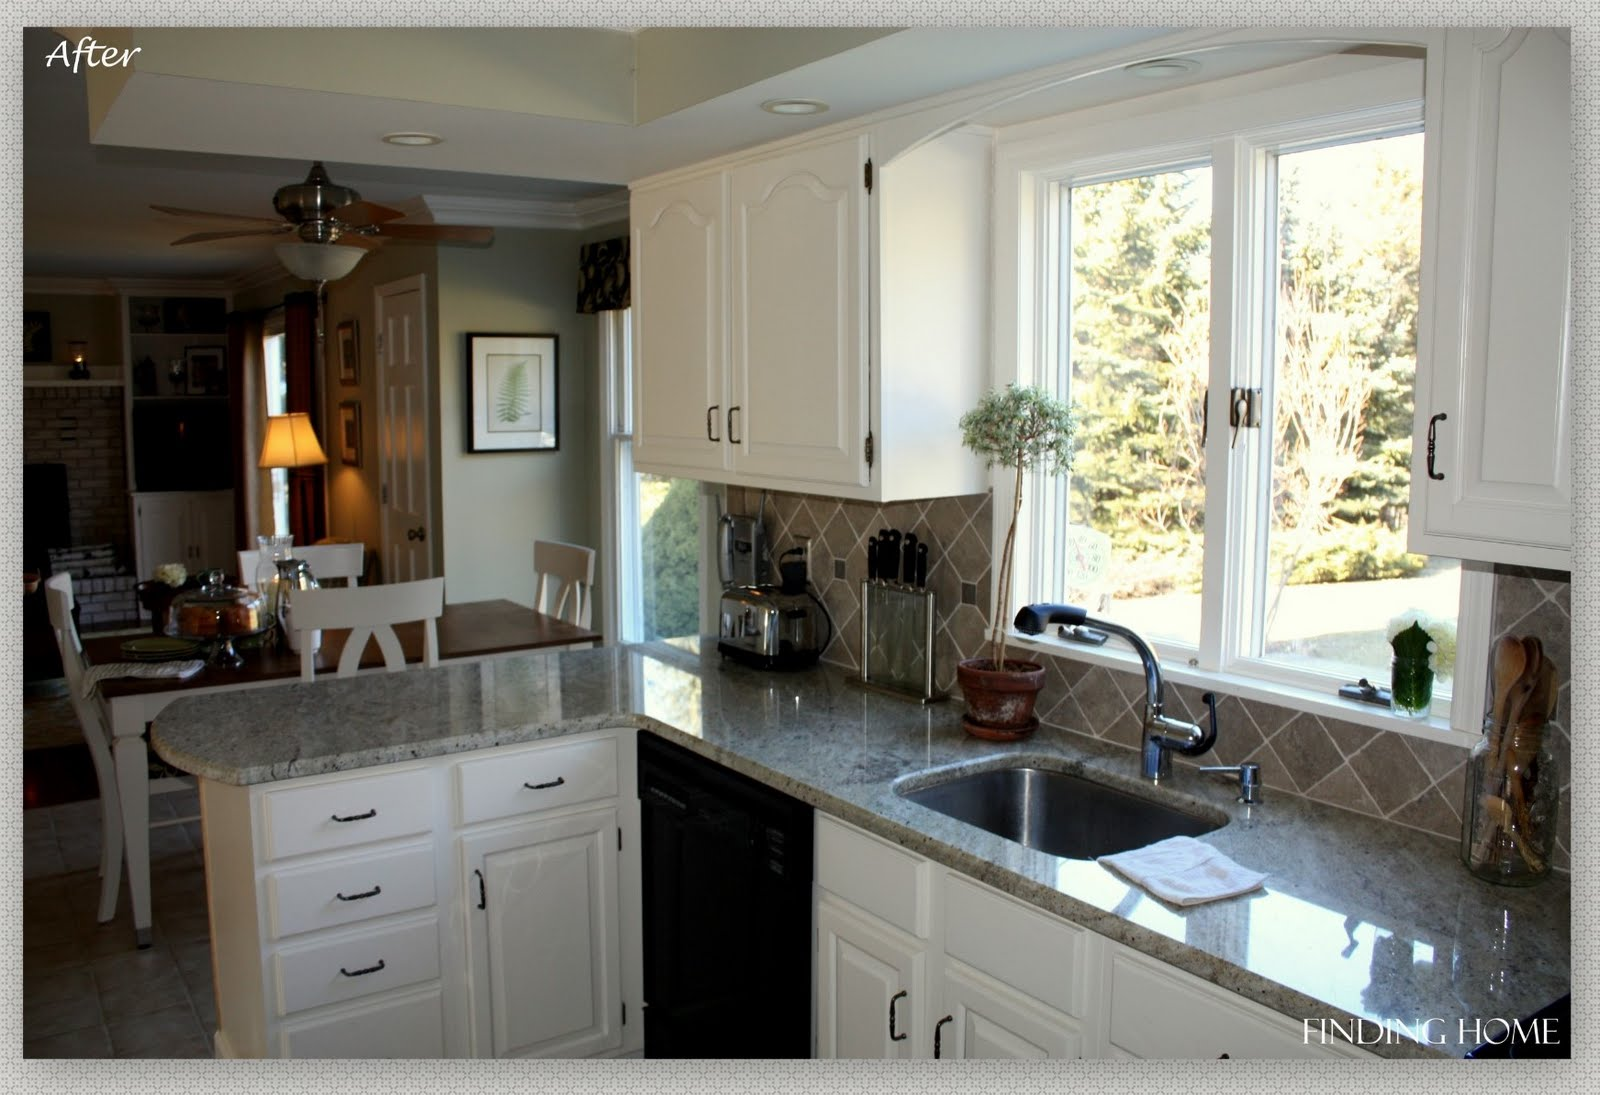 Painted Oak Kitchen Cabinets Remodelaholic From Oak To Beautiful White Kitchen